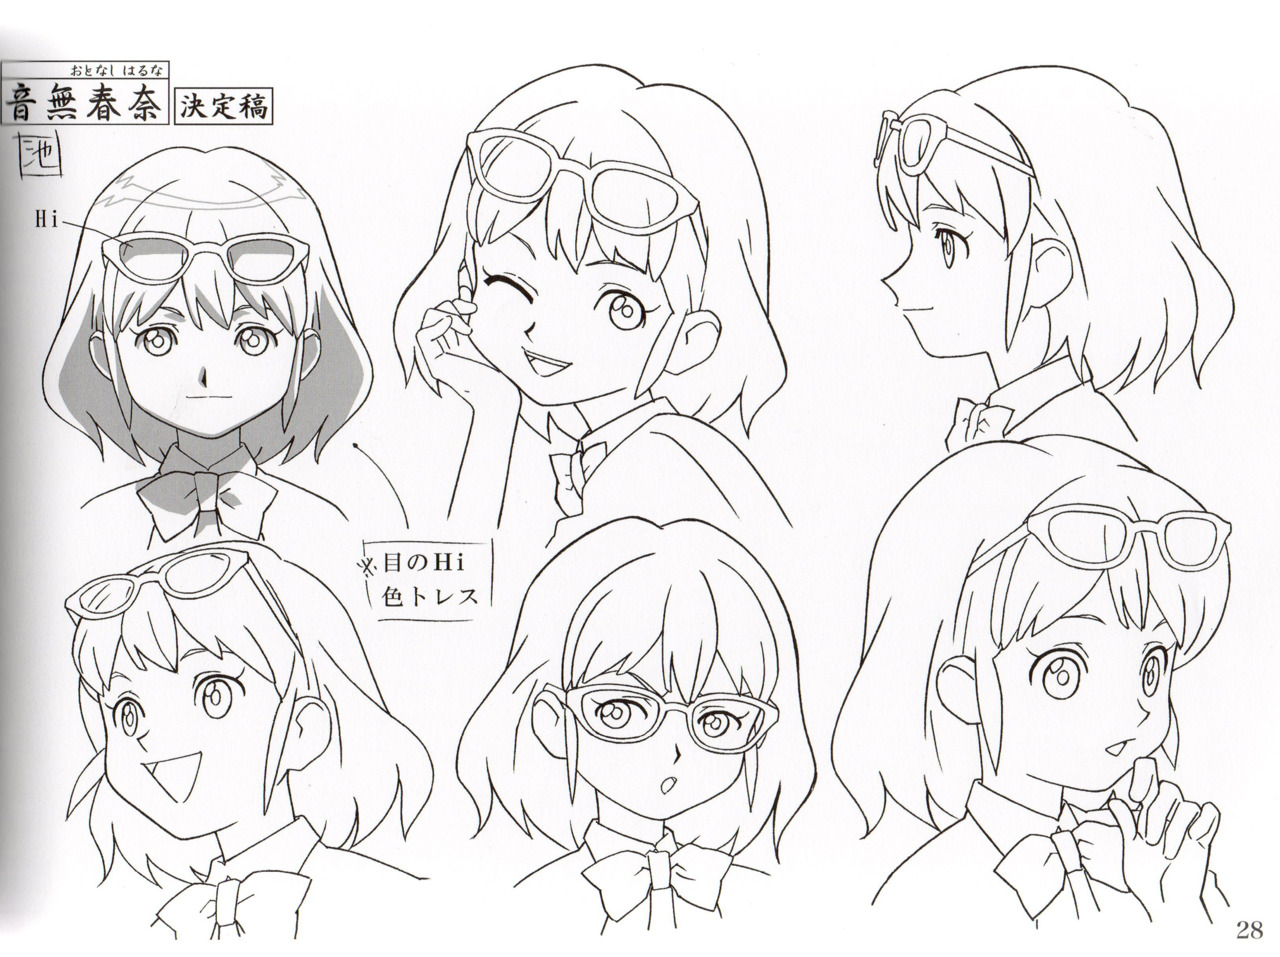 Inazuma eleven colouring pages page 2 - Otonashi Facial Design Jpg